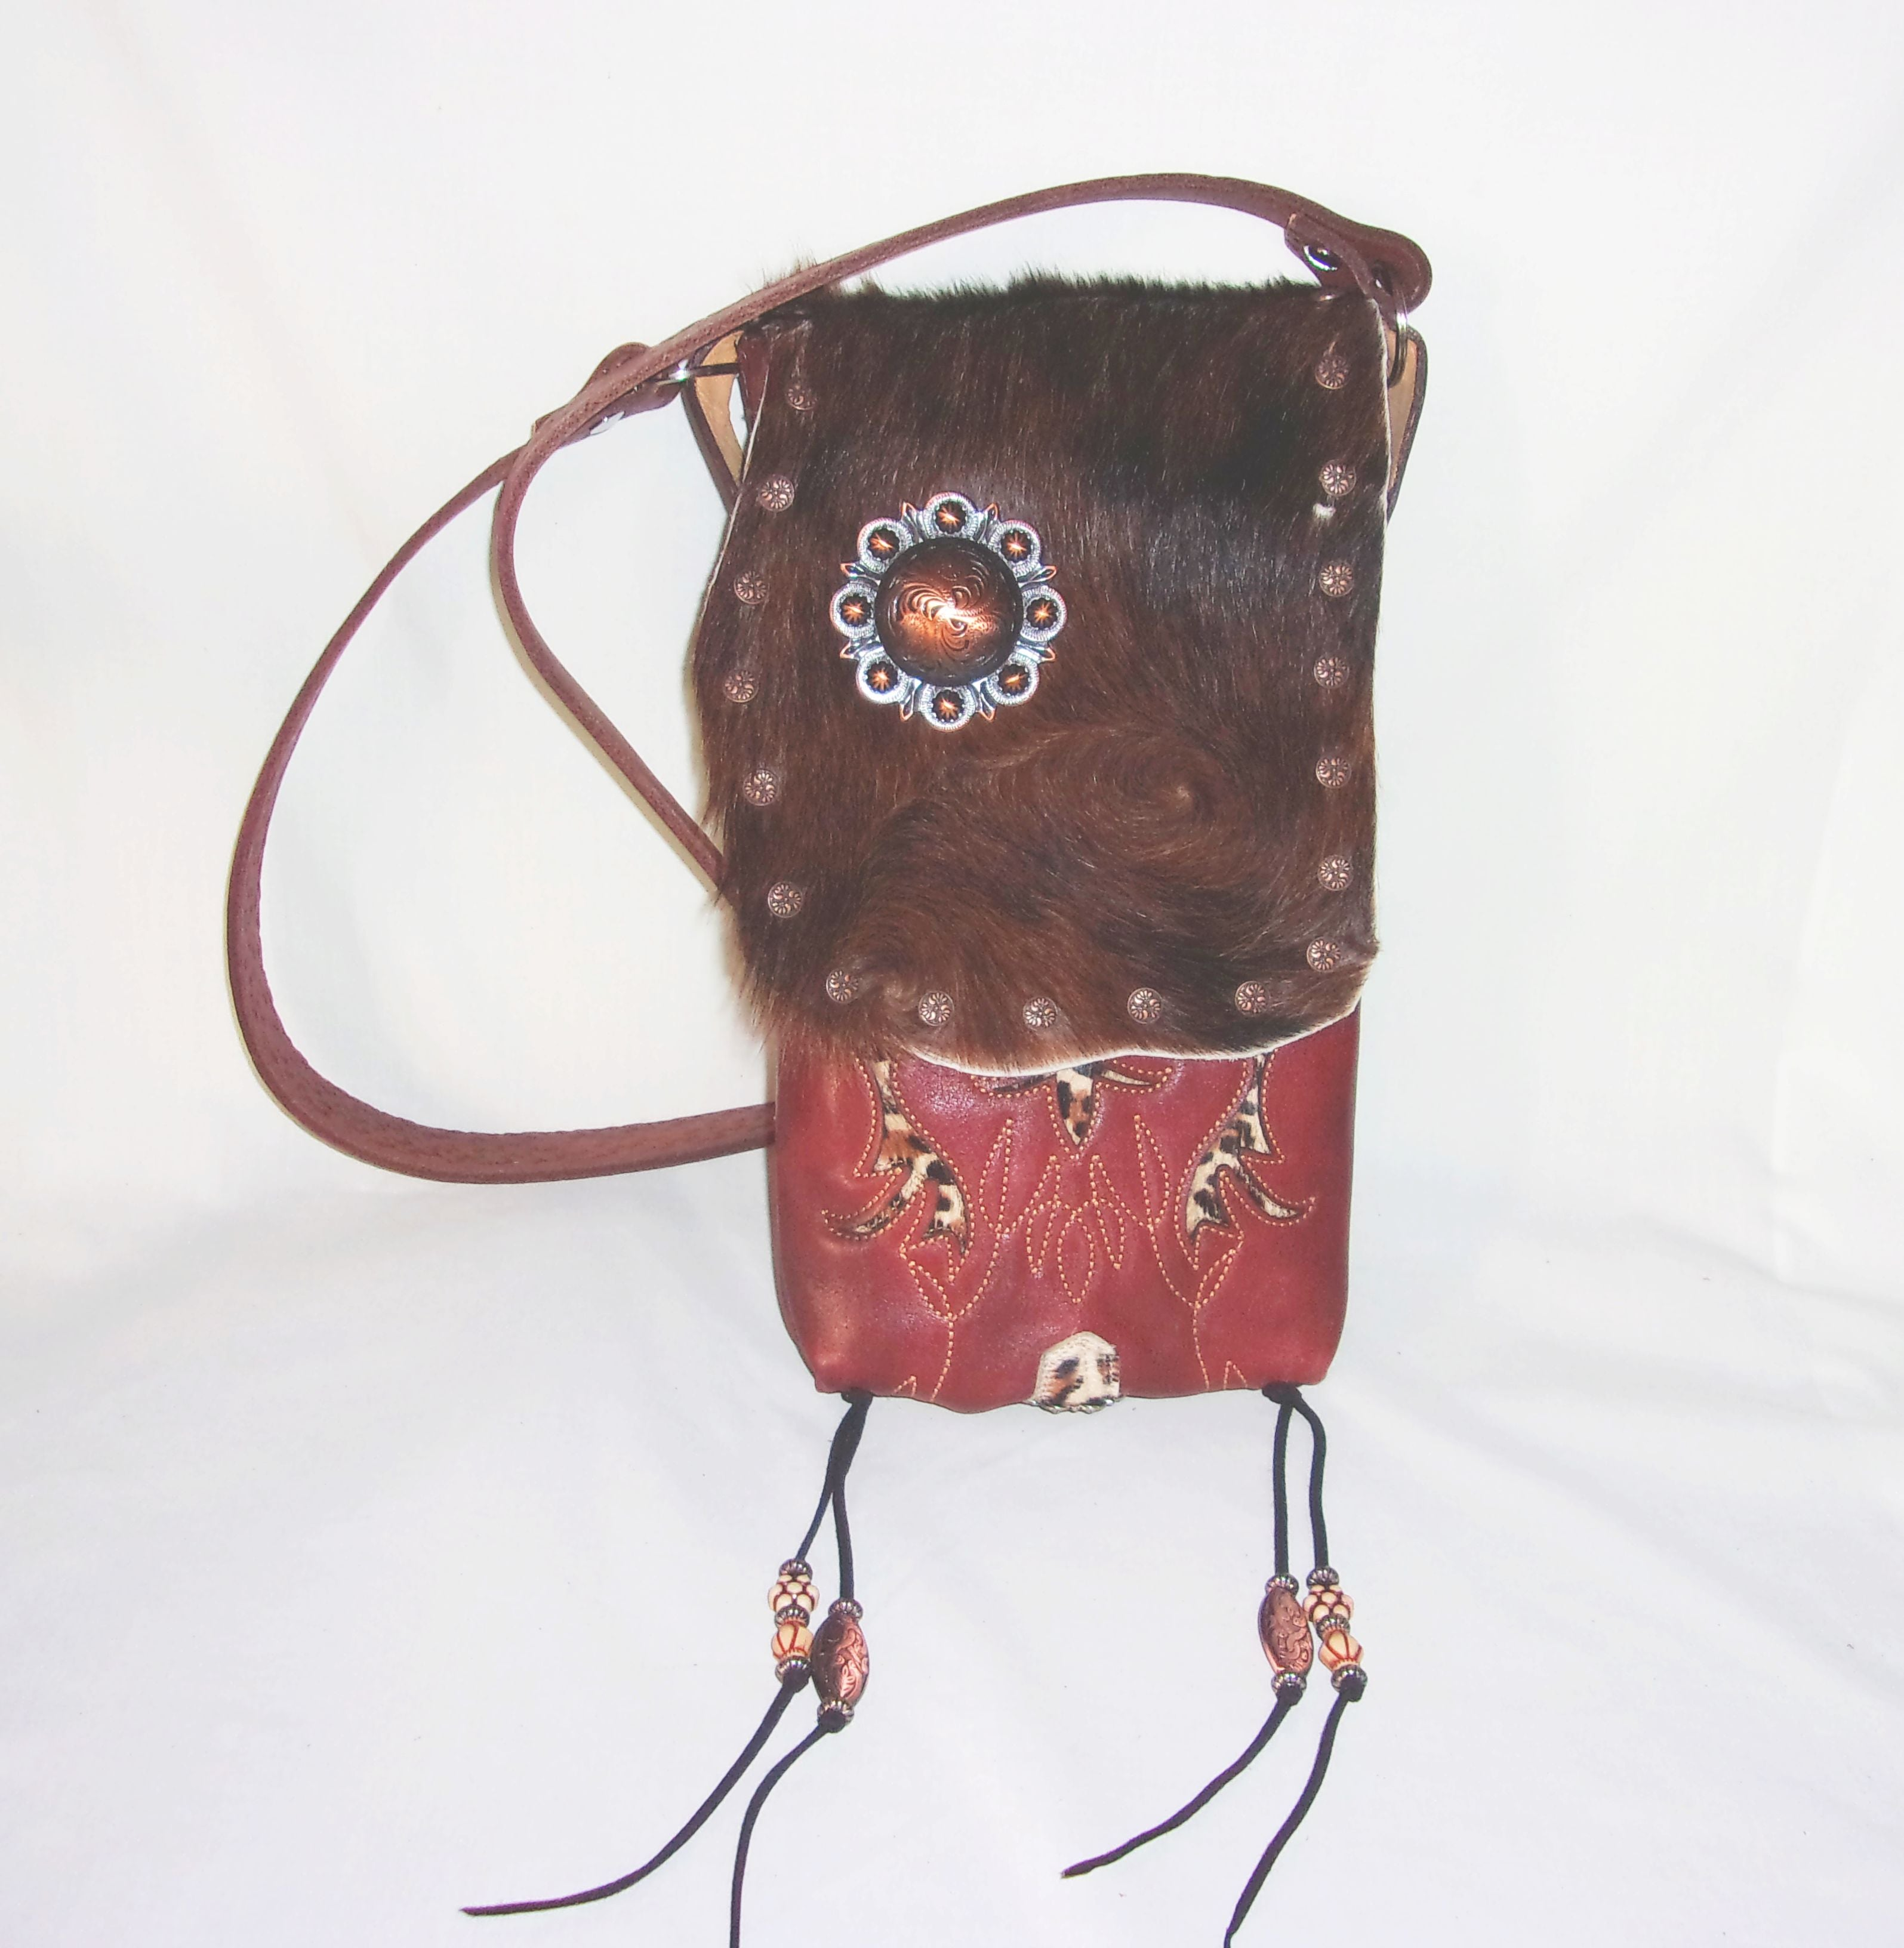 Hair on Hide Bag - Cowboy Boot Purse - Cowhide Purse - Handcrafted Crossbody Purse HH10